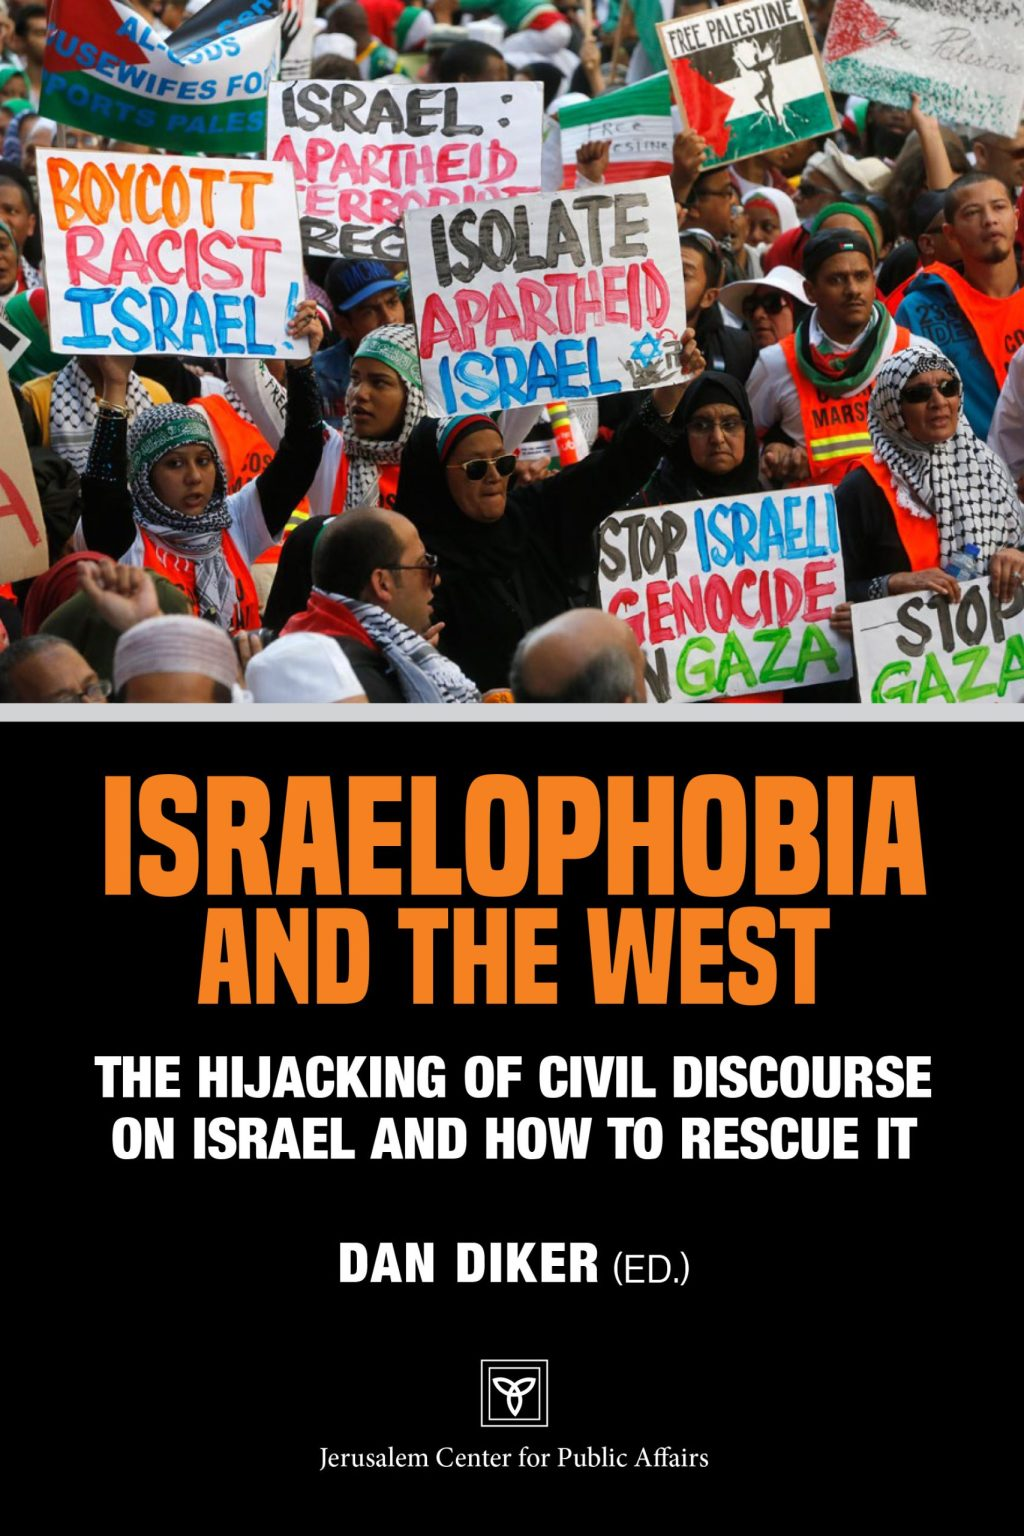 Israelophobia and the West: The Hijacking of Civil Discourse on Israel and How to Rescue It